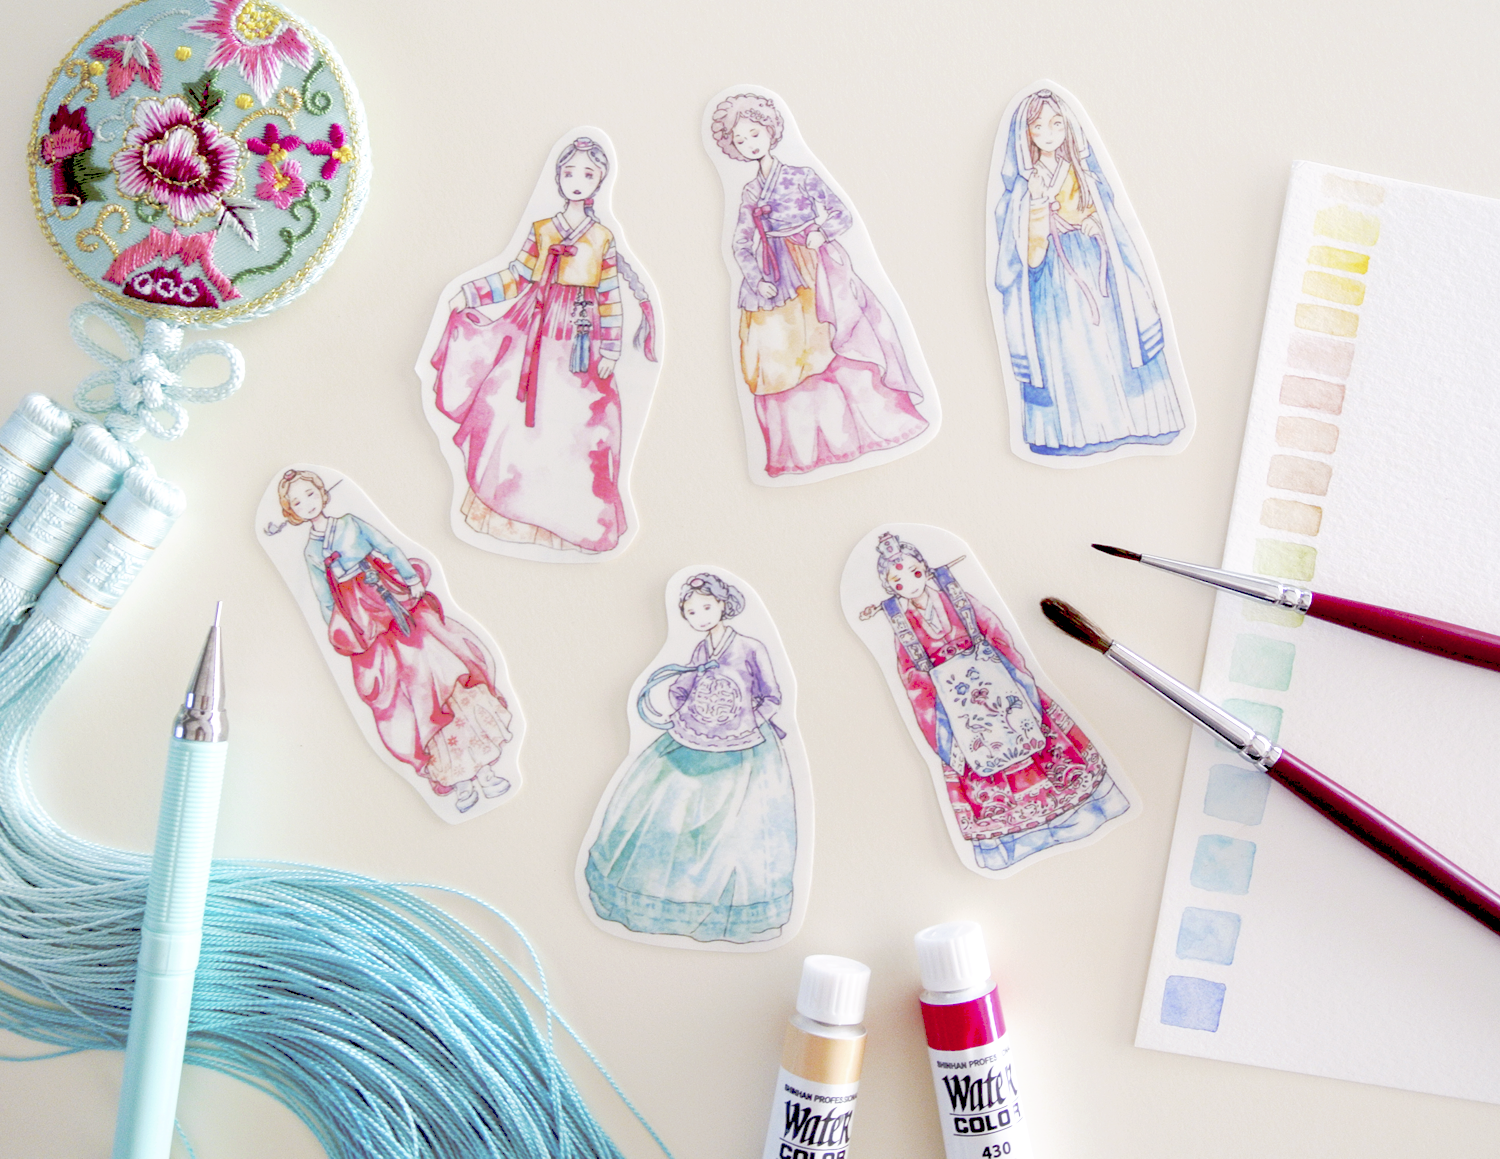 Traditional Korean Dress Hanbok Stickers:  Handmade watercolor sticker flakes showing colorful and cute ladies in Hanbok! Little gift idea for journal lovers, anyone interested in Korean culture or traveling to Korea - and for decorating travel diaries!